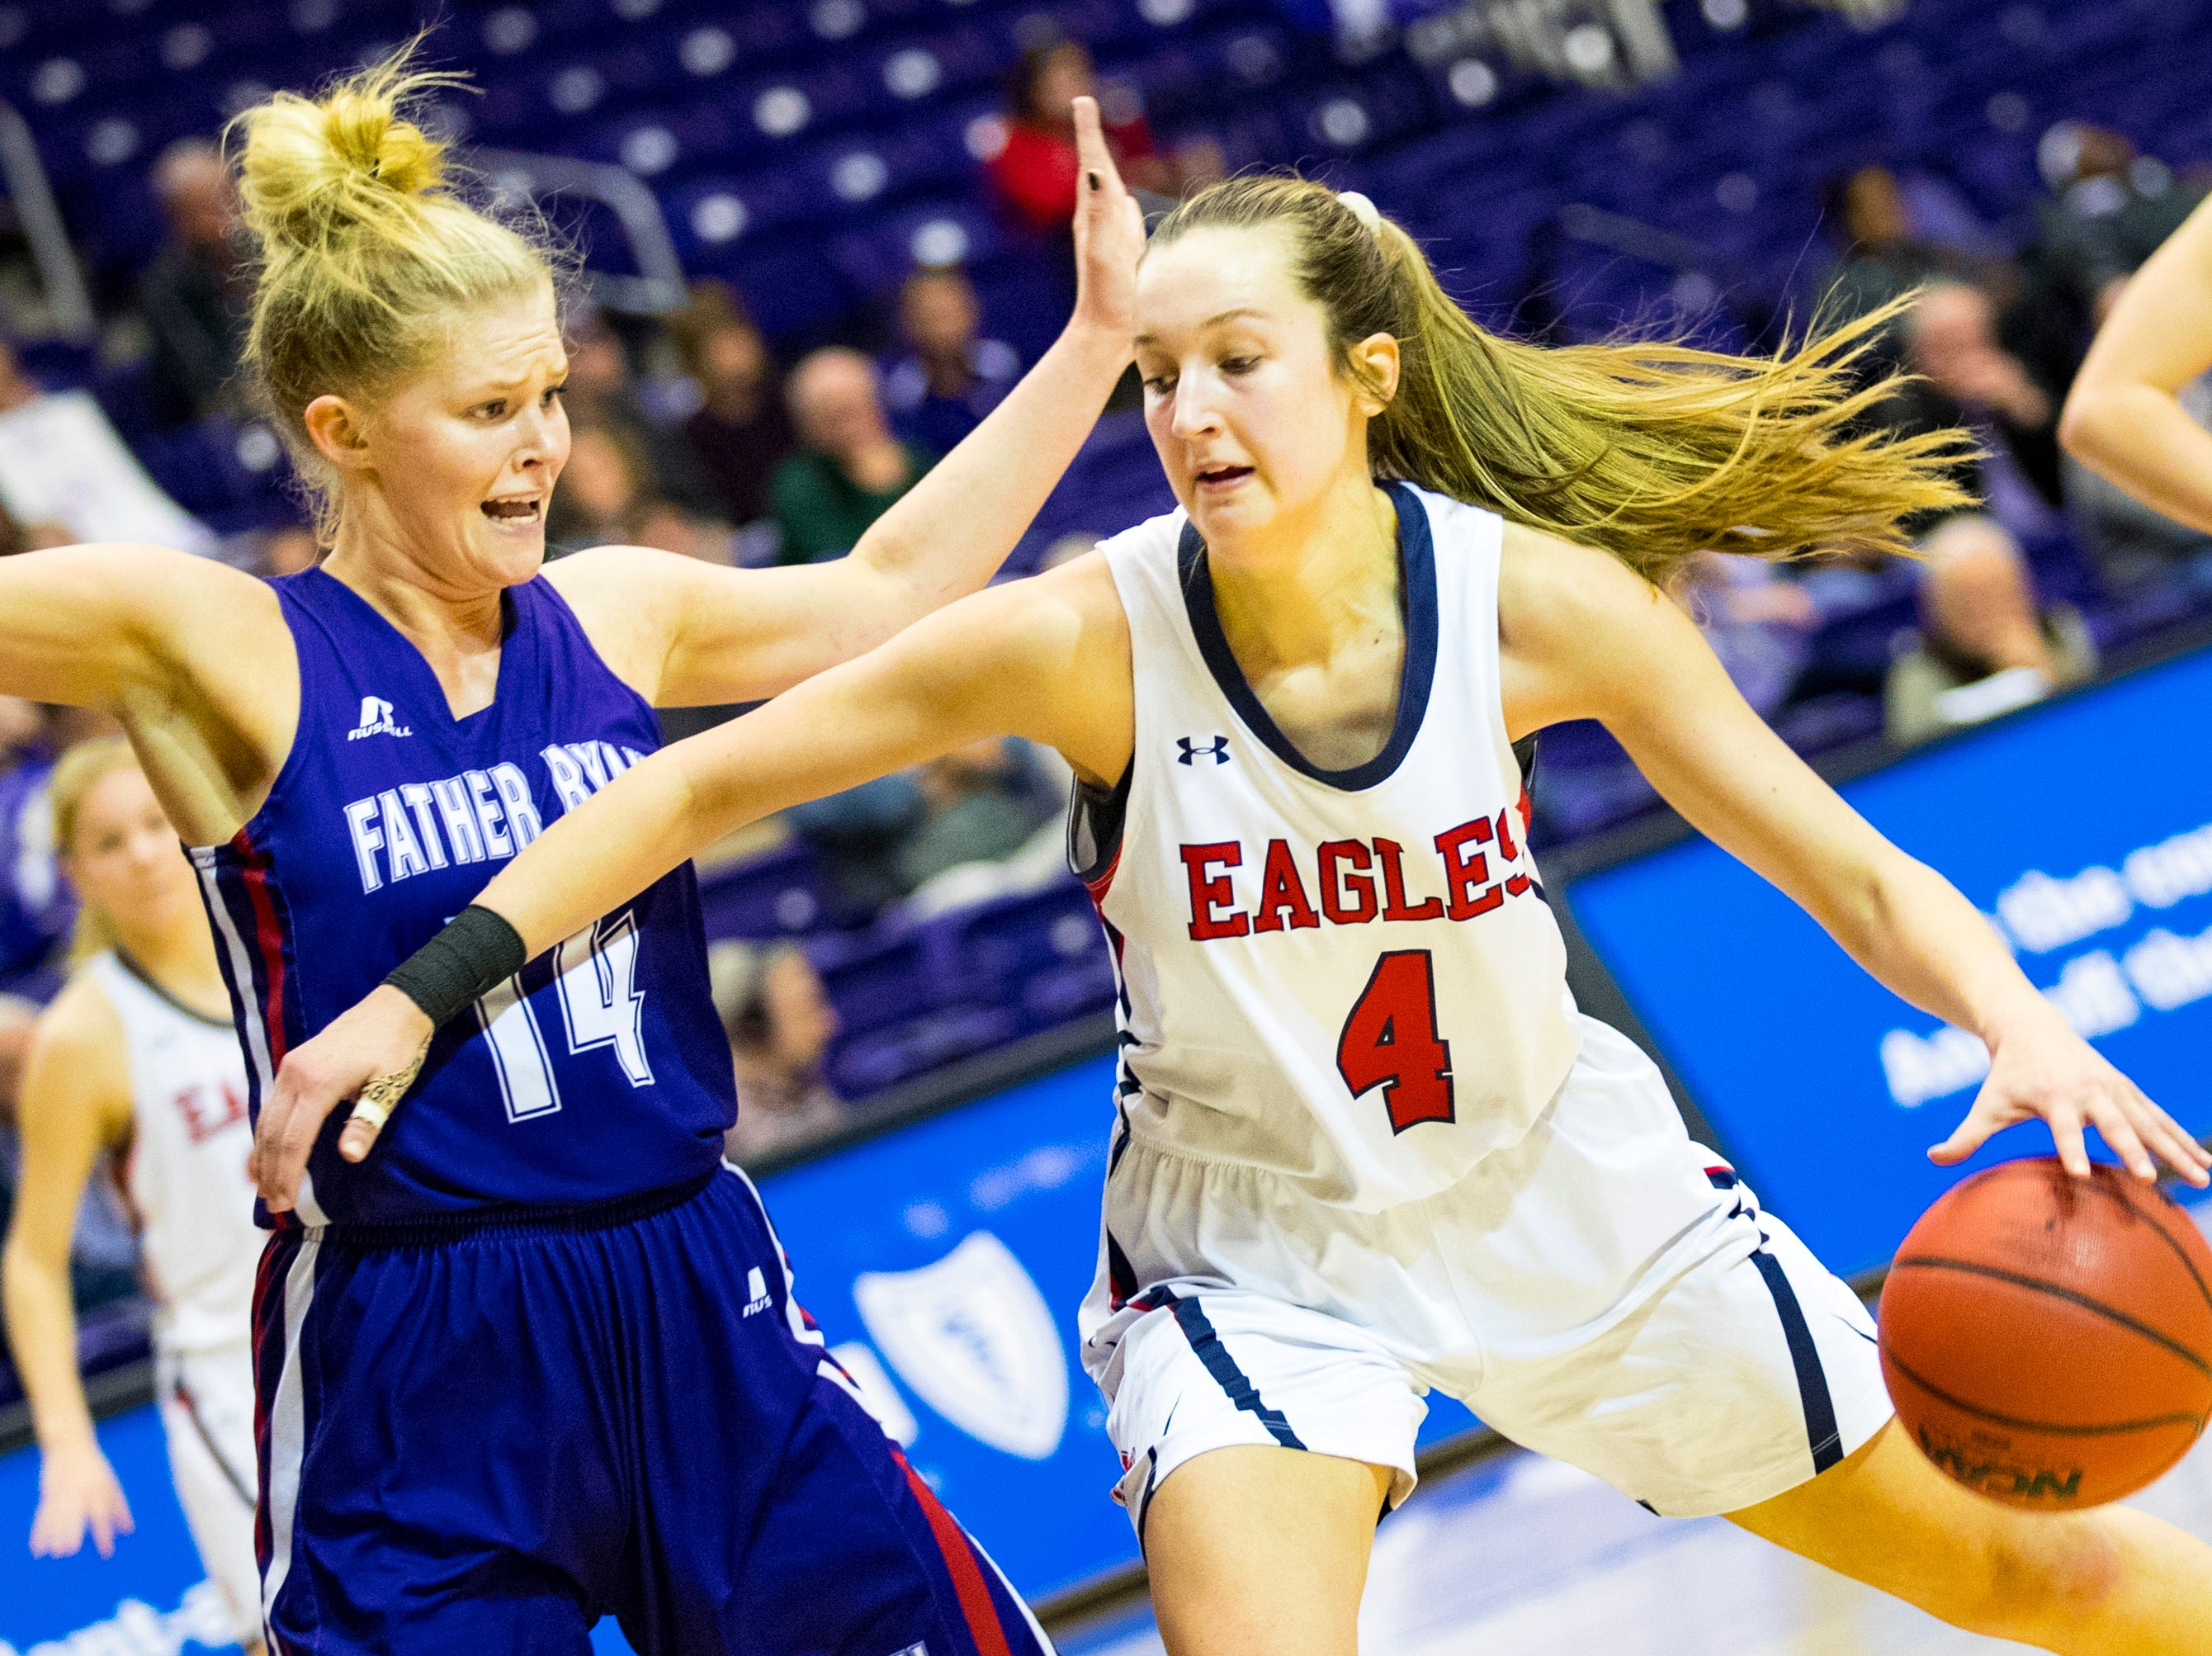 Father Ryan's Bree Thibeault (14) defends against Brentwood Academy's Maggie Brown (4) during Brentwood Academy's game against Father Ryan in the semifinal round of the TSSAA Division II Class AA State Championships at Lipscomb University's Allen Arena in Nashville on Thursday, Feb. 28, 2019.